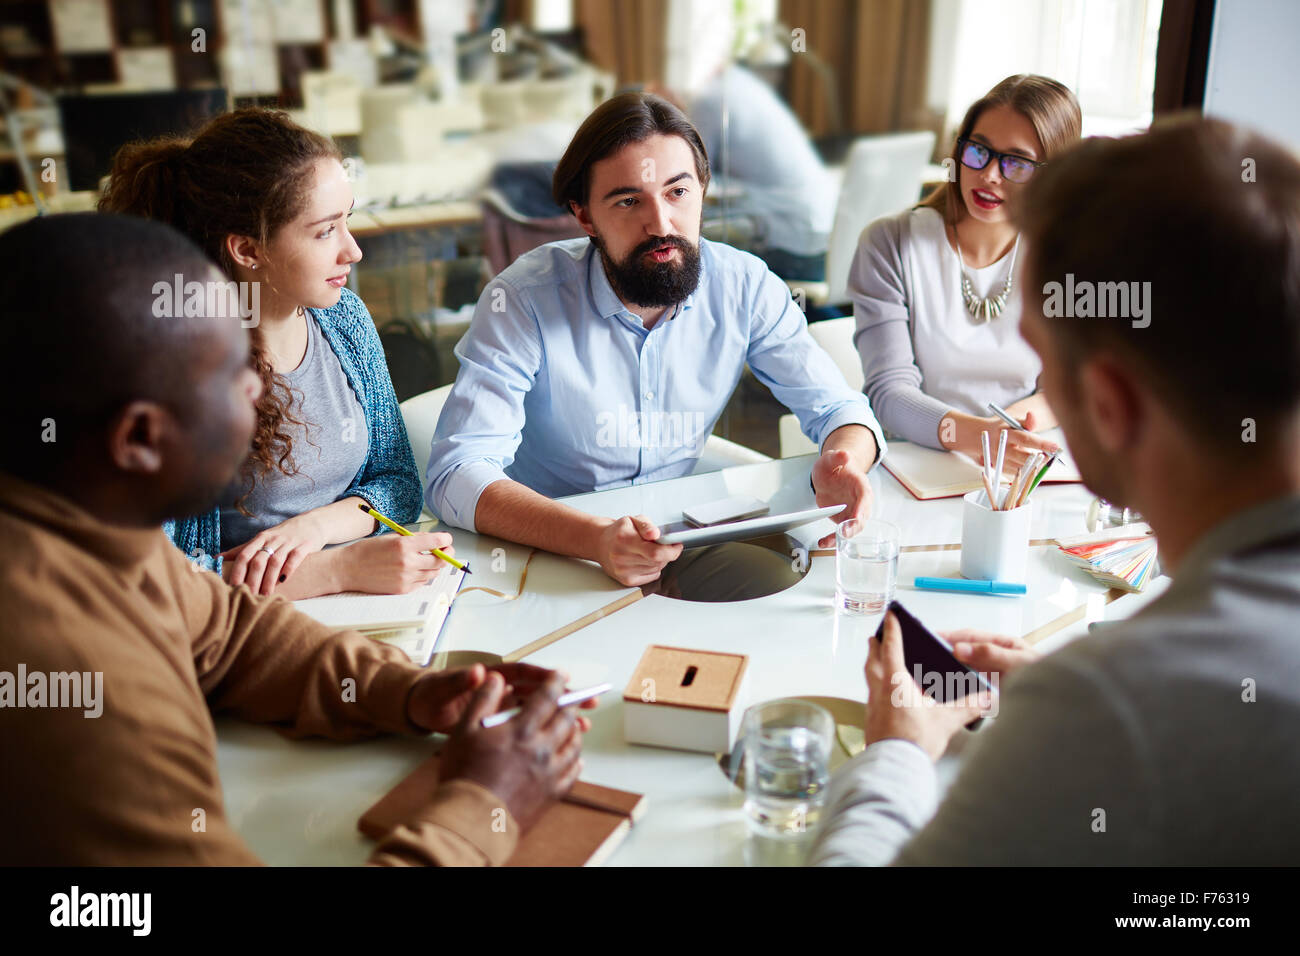 Group of office workers listening to colleague at meeting - Stock Image